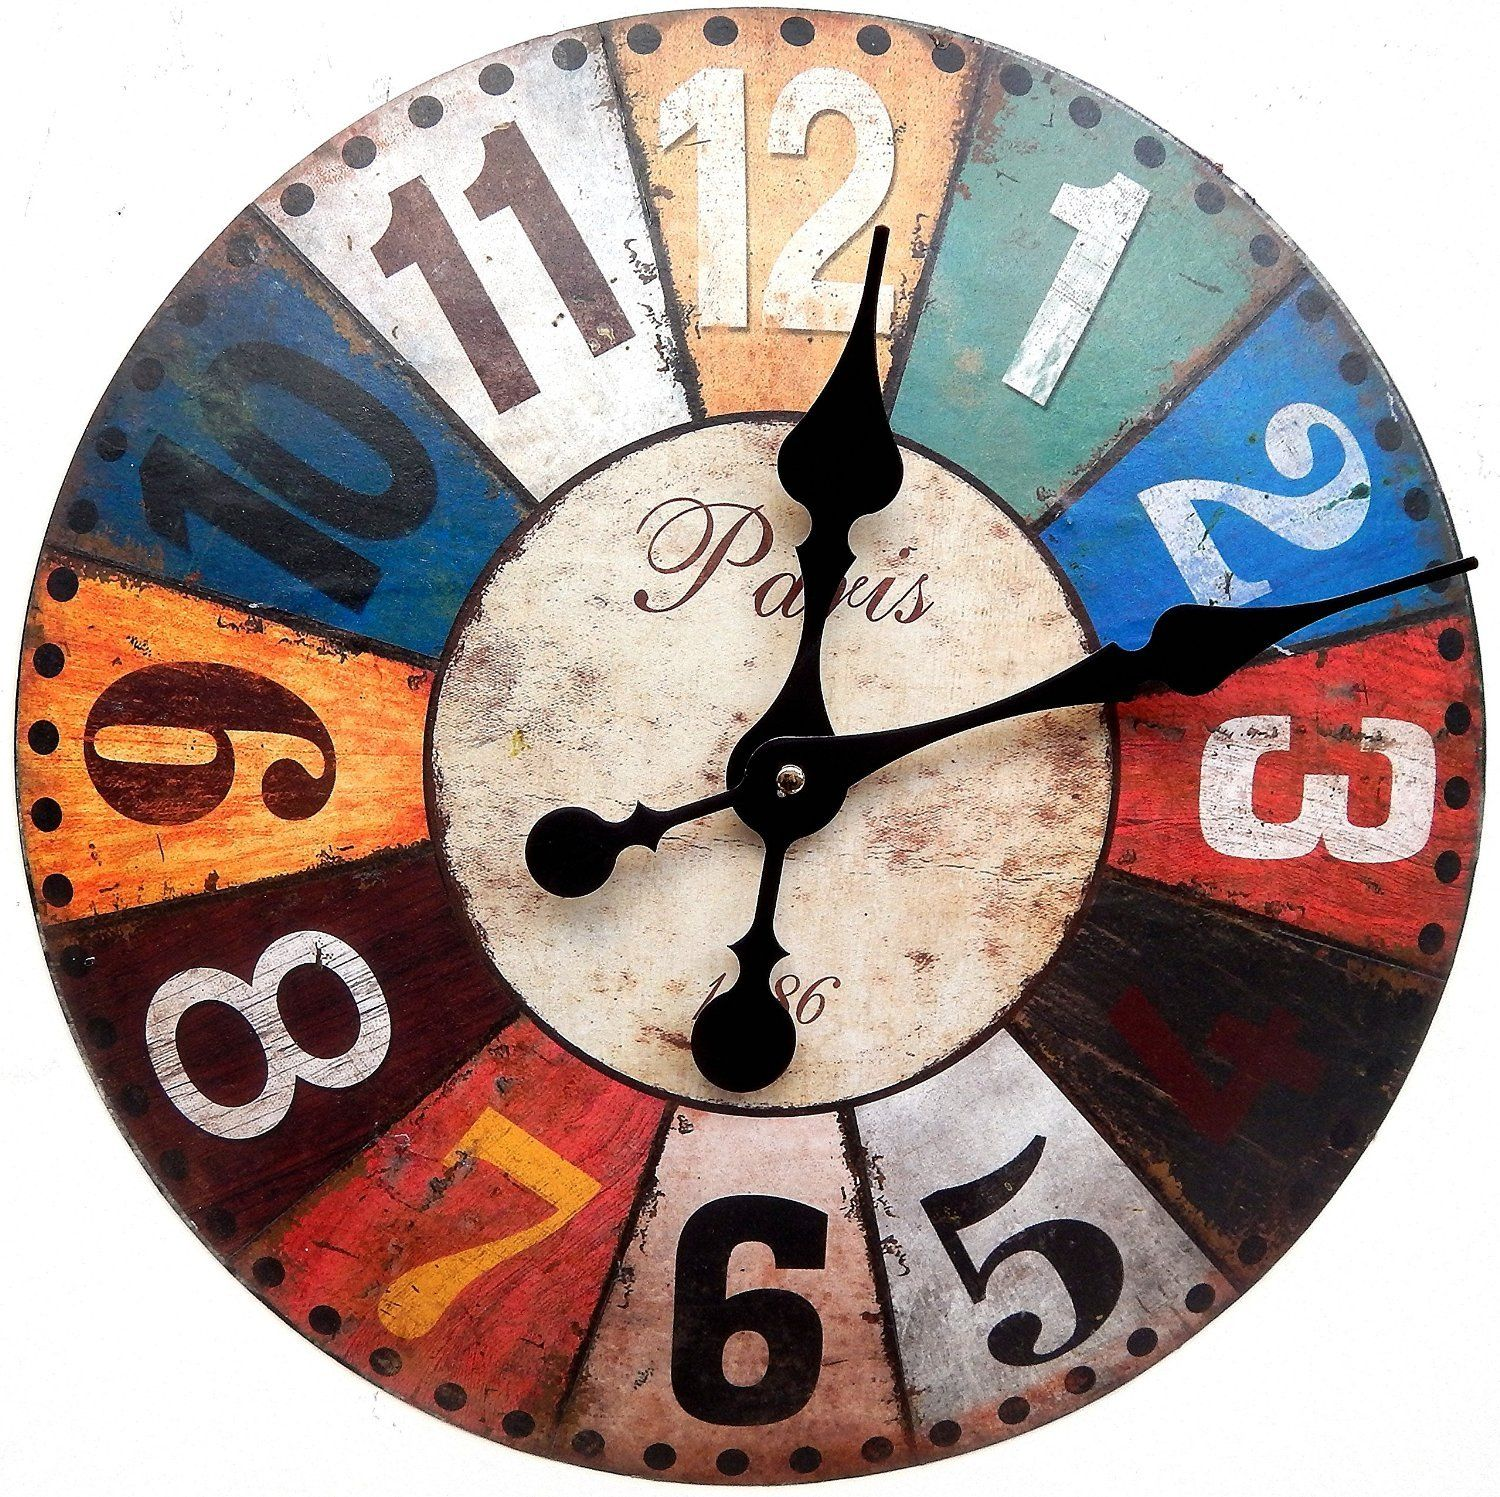 Reloj de pared diseno paris 1886 muy grande decoracion - Reloj pared diseno ...